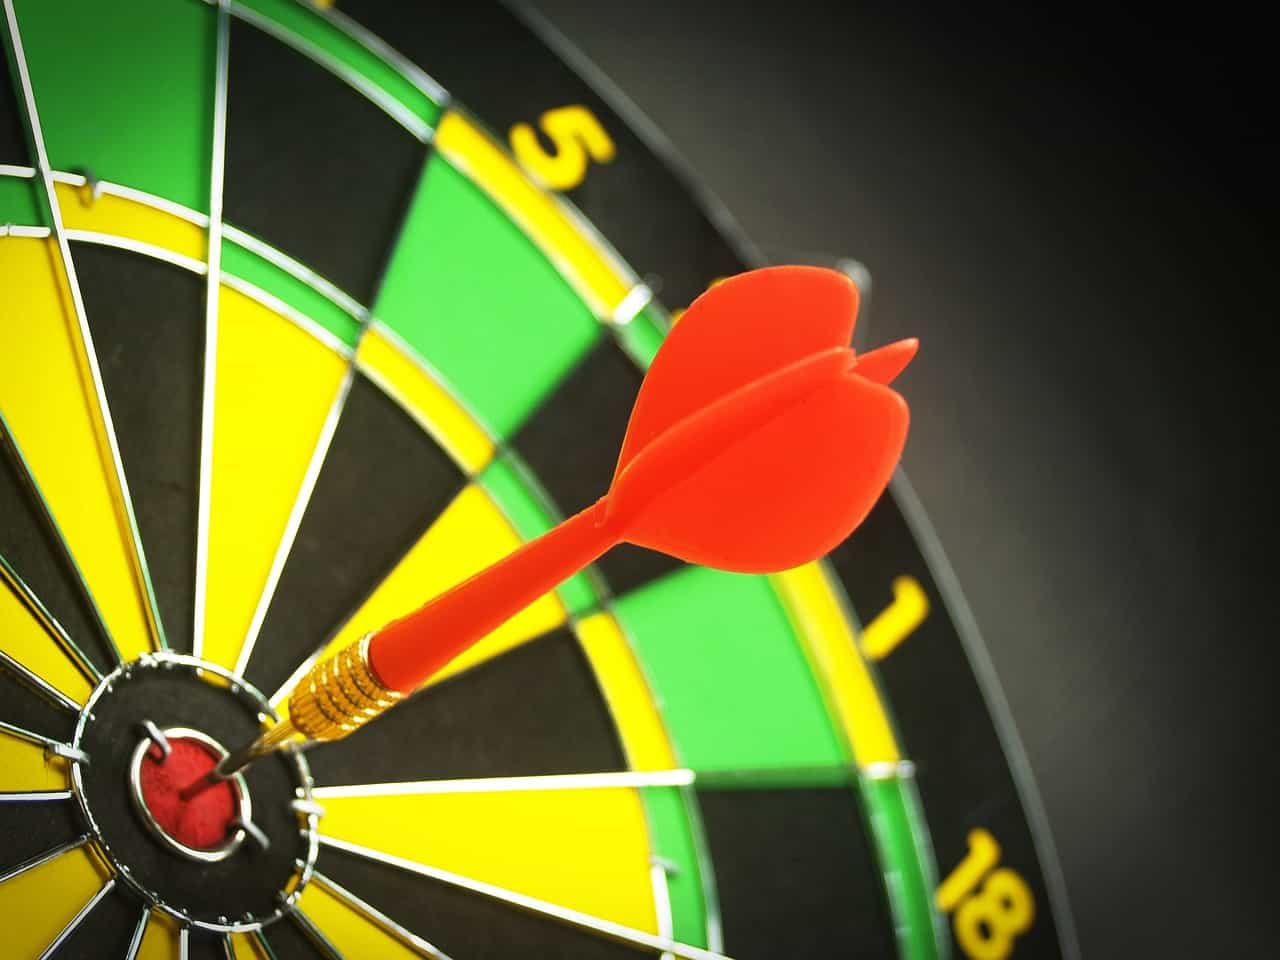 Slightly blurry closeup of the top right of a dartboard, showing a red dart in the bull's eye. This is the featured image for a blog post about creating SMART learning objectives